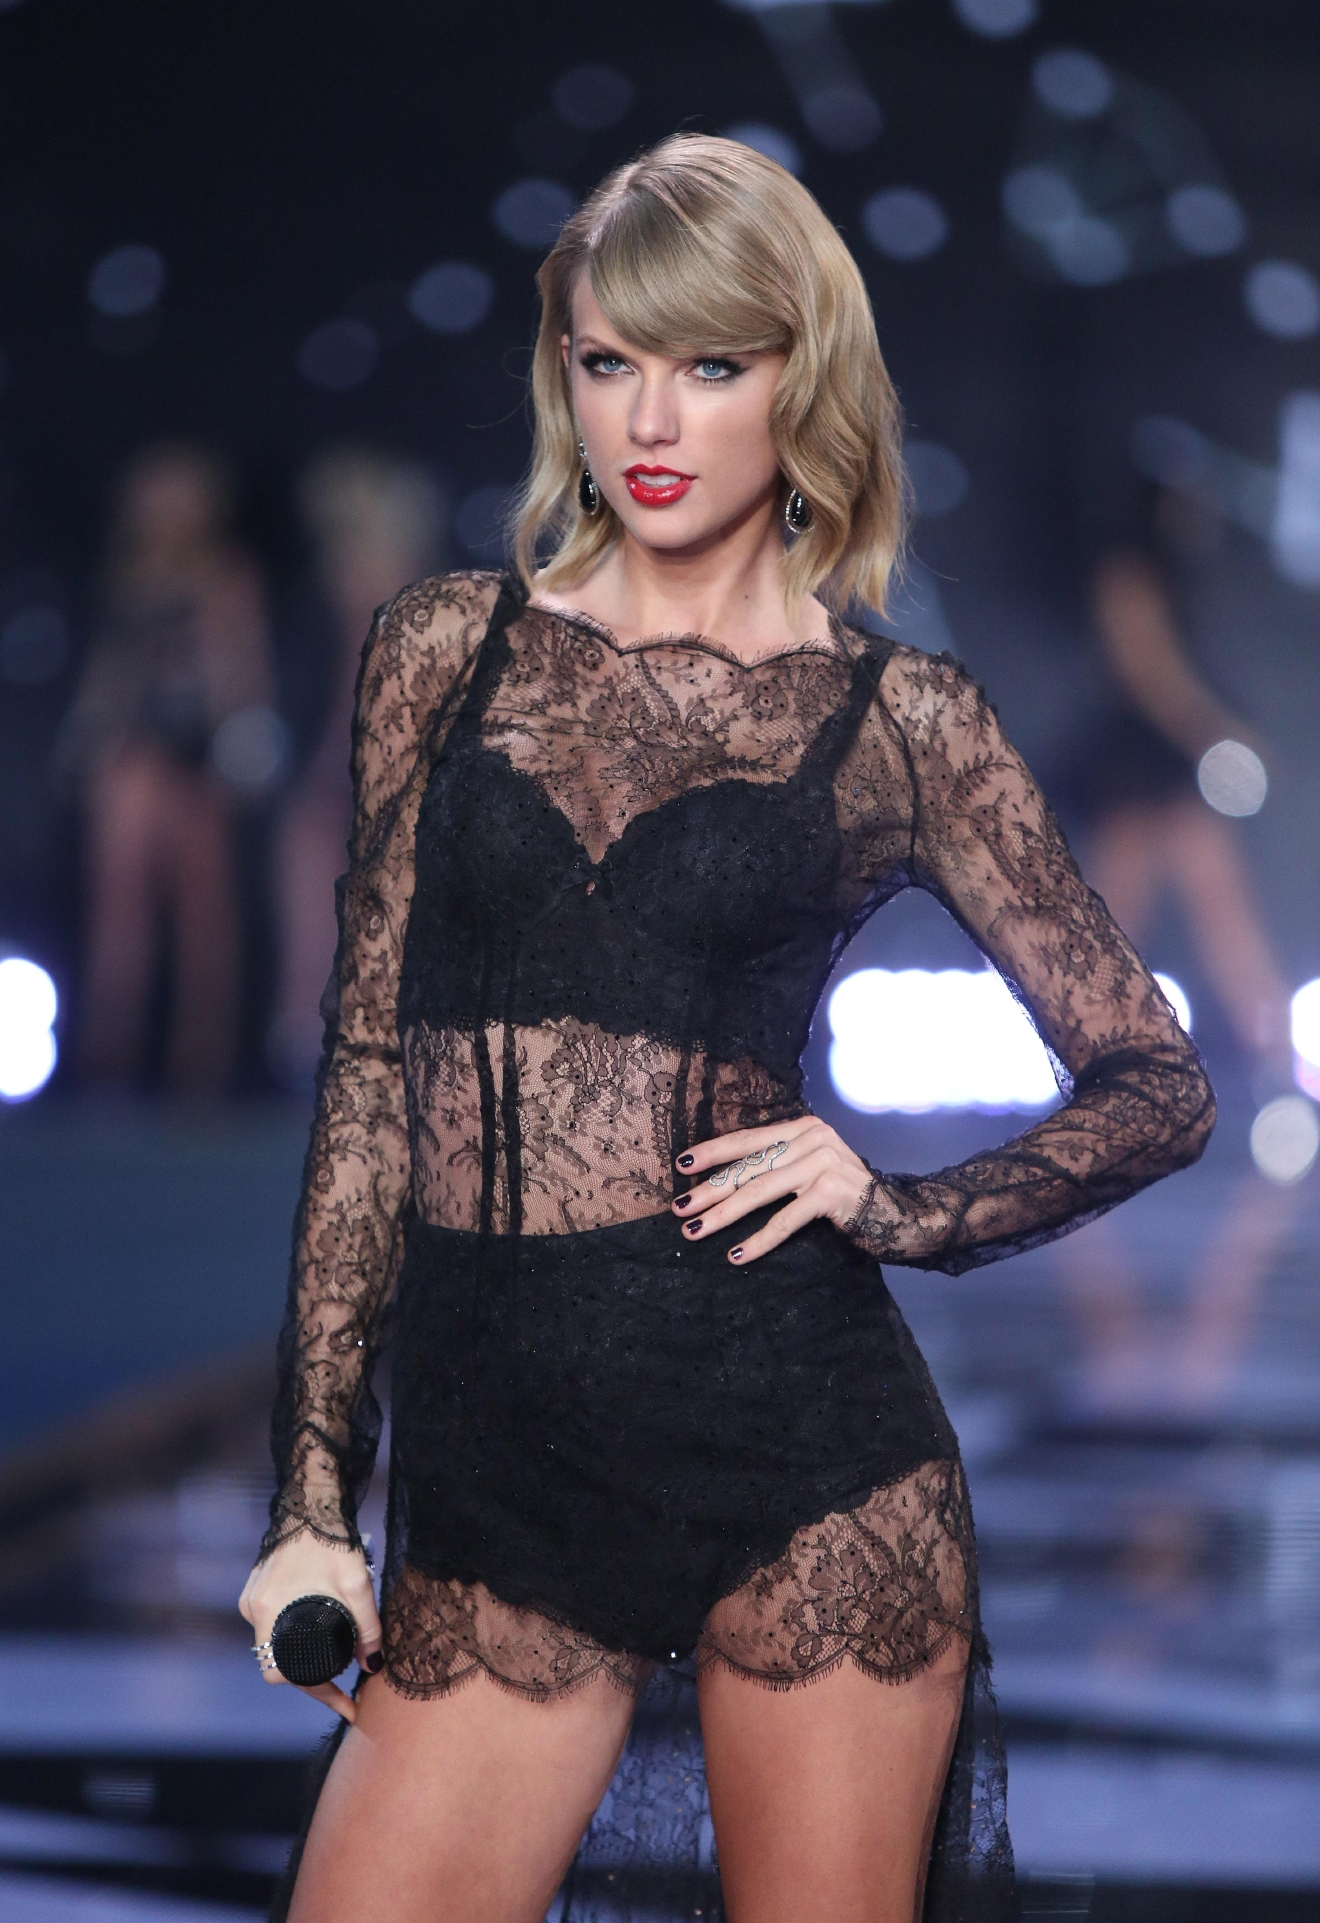 Taylor Swift performs at a Victoria's Secret fashion show in London on Dec. 2, 2014. (Photo credit: Joel Ryan/Invision/AP.)